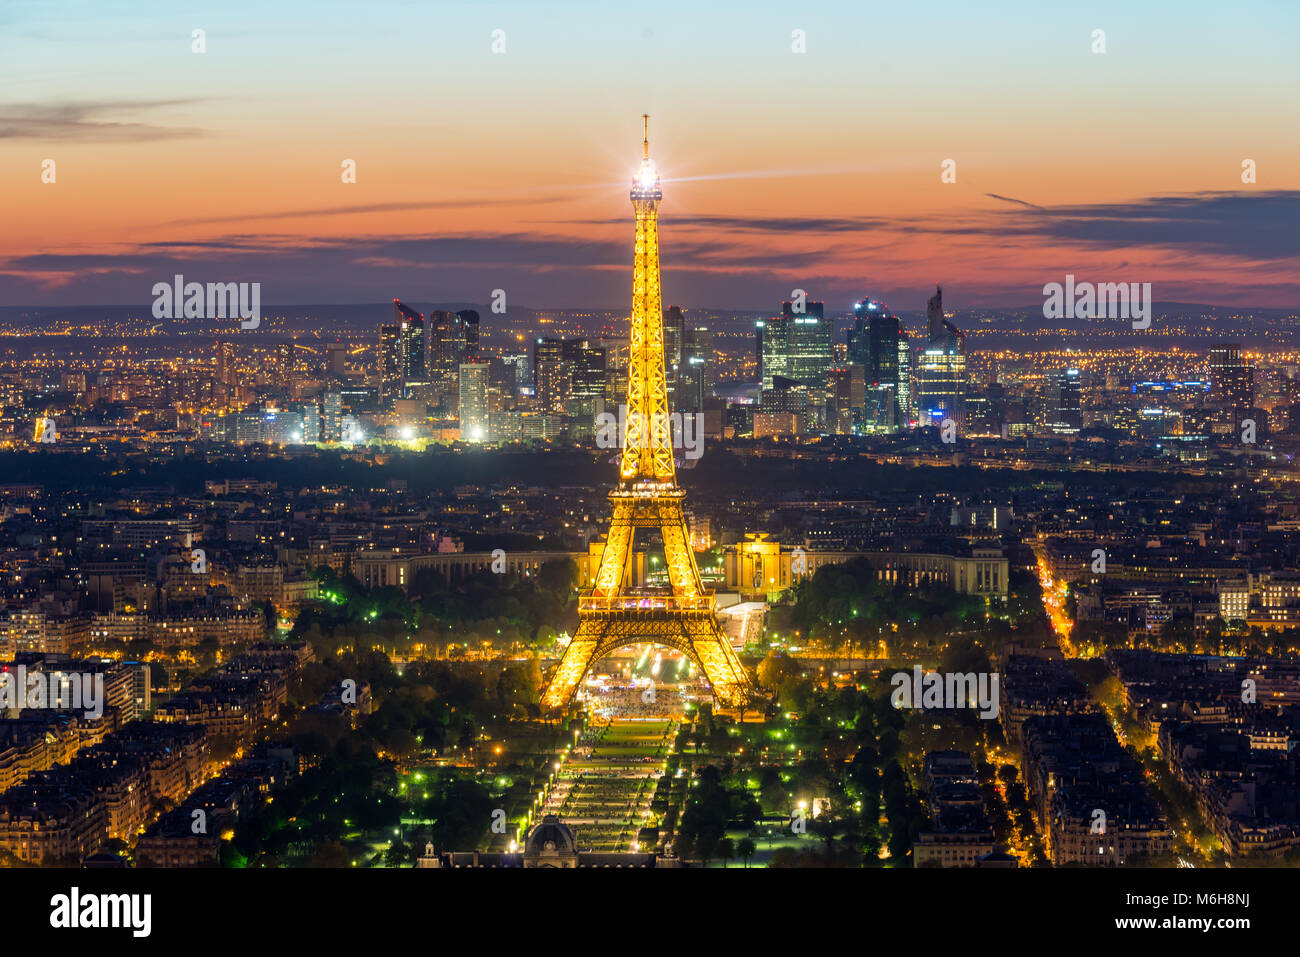 PARIS, FRANCE - May 5, 2016: Beautiful Paris skyline view Eiffel tower during light show at dusk, Paris, France Stock Photo